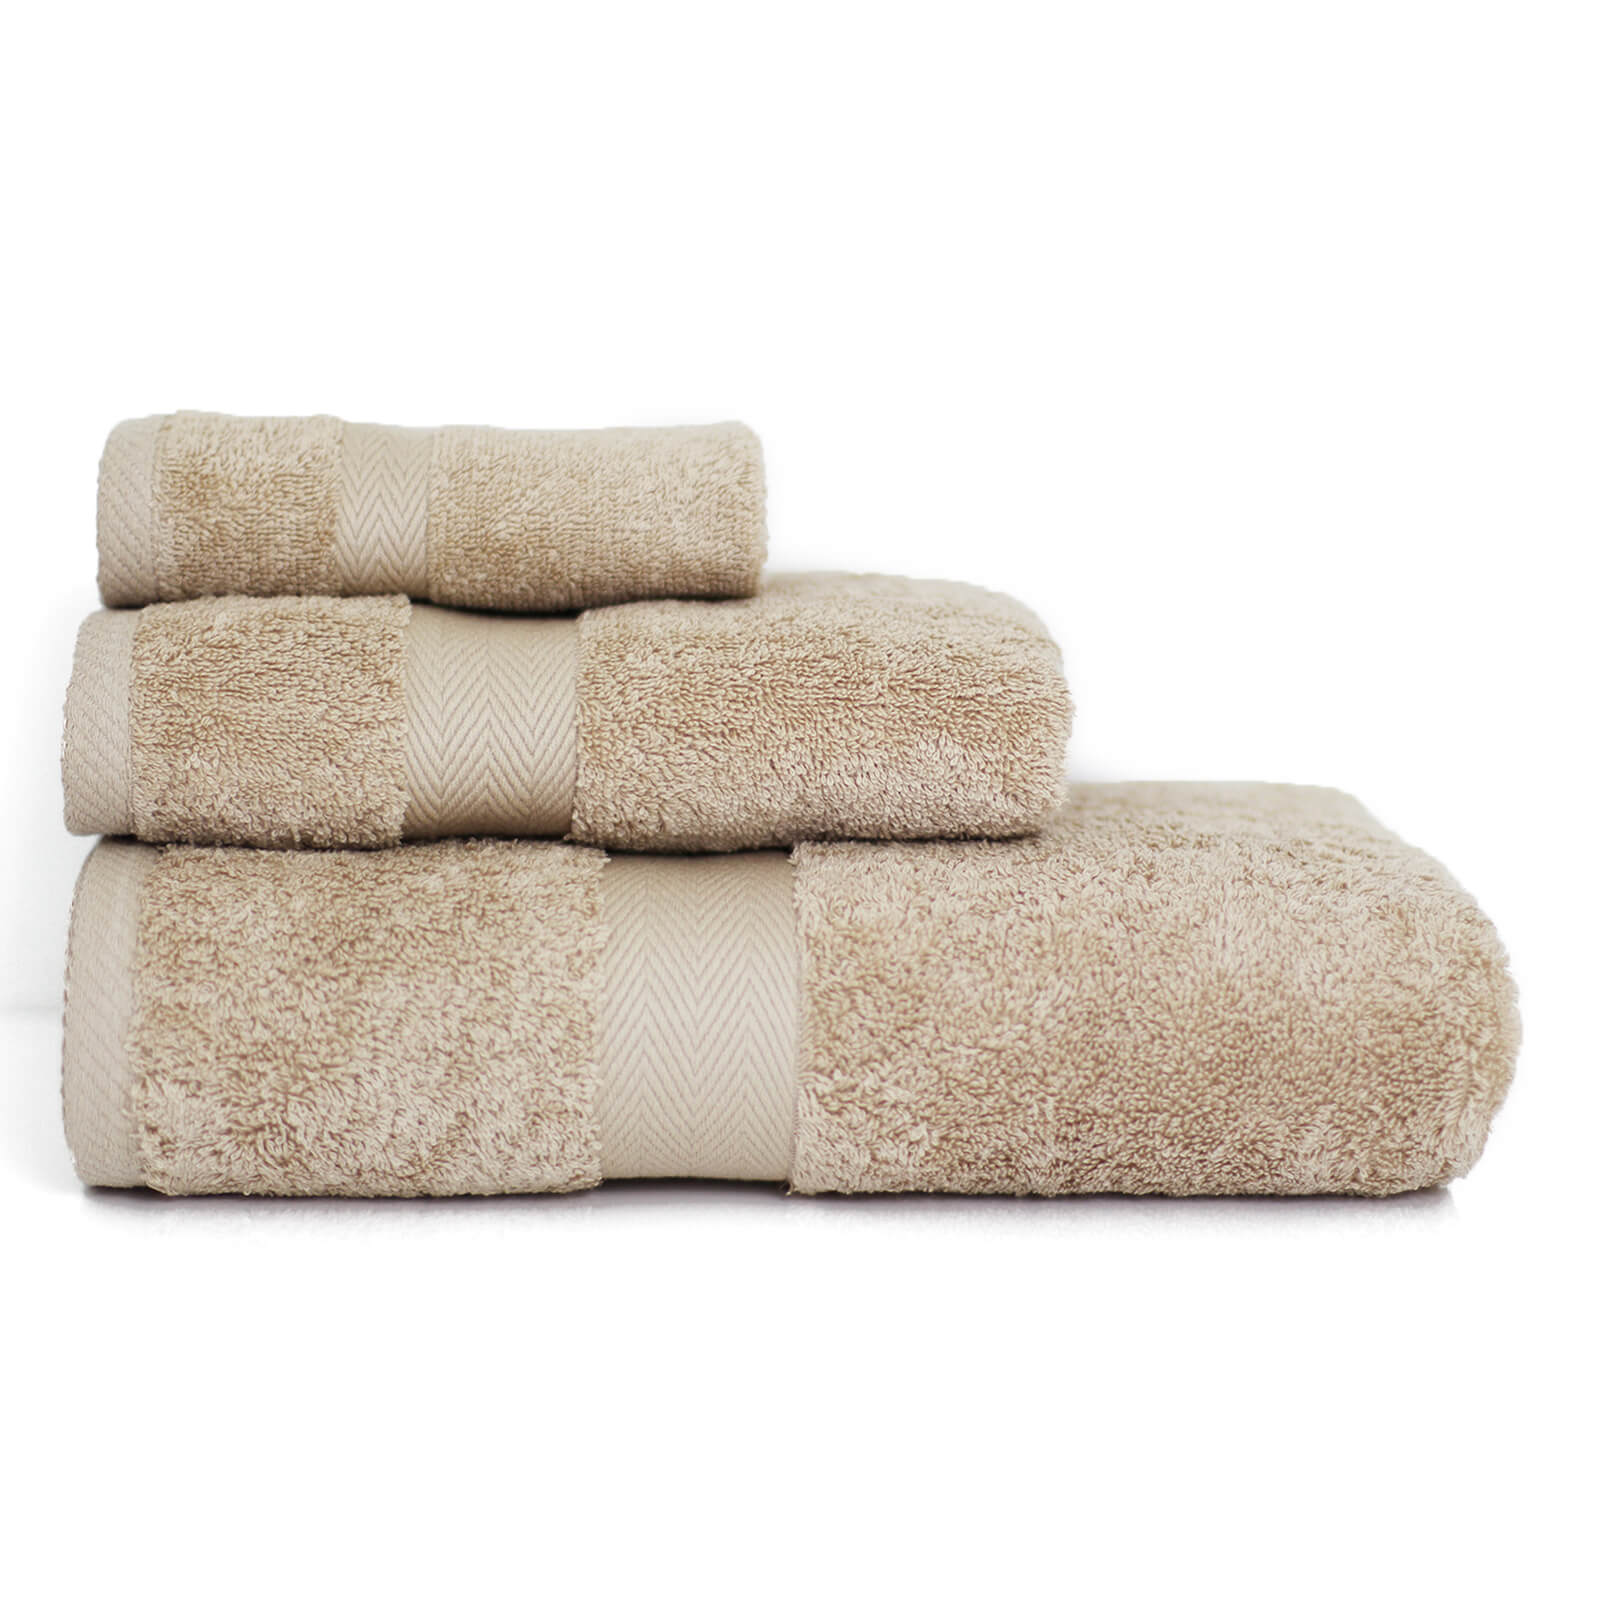 Restmor 100% Egyptian Cotton 3 Piece Luxury Towel Bale (600GSM) - Latte